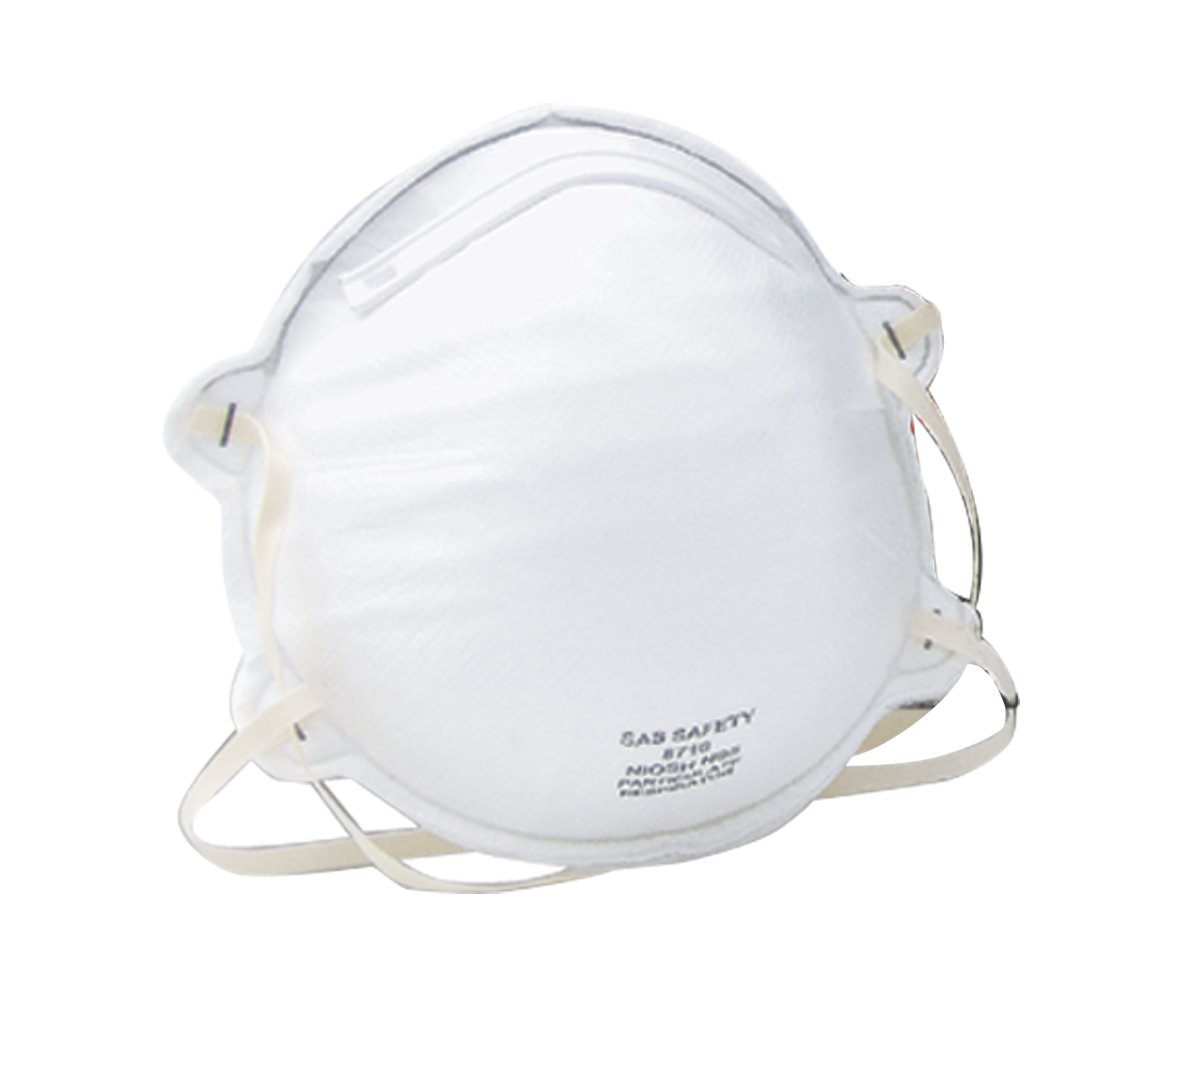 SAS Safety 8710 N95 Particulate Respirator with Cushion Seal, 20-Pack